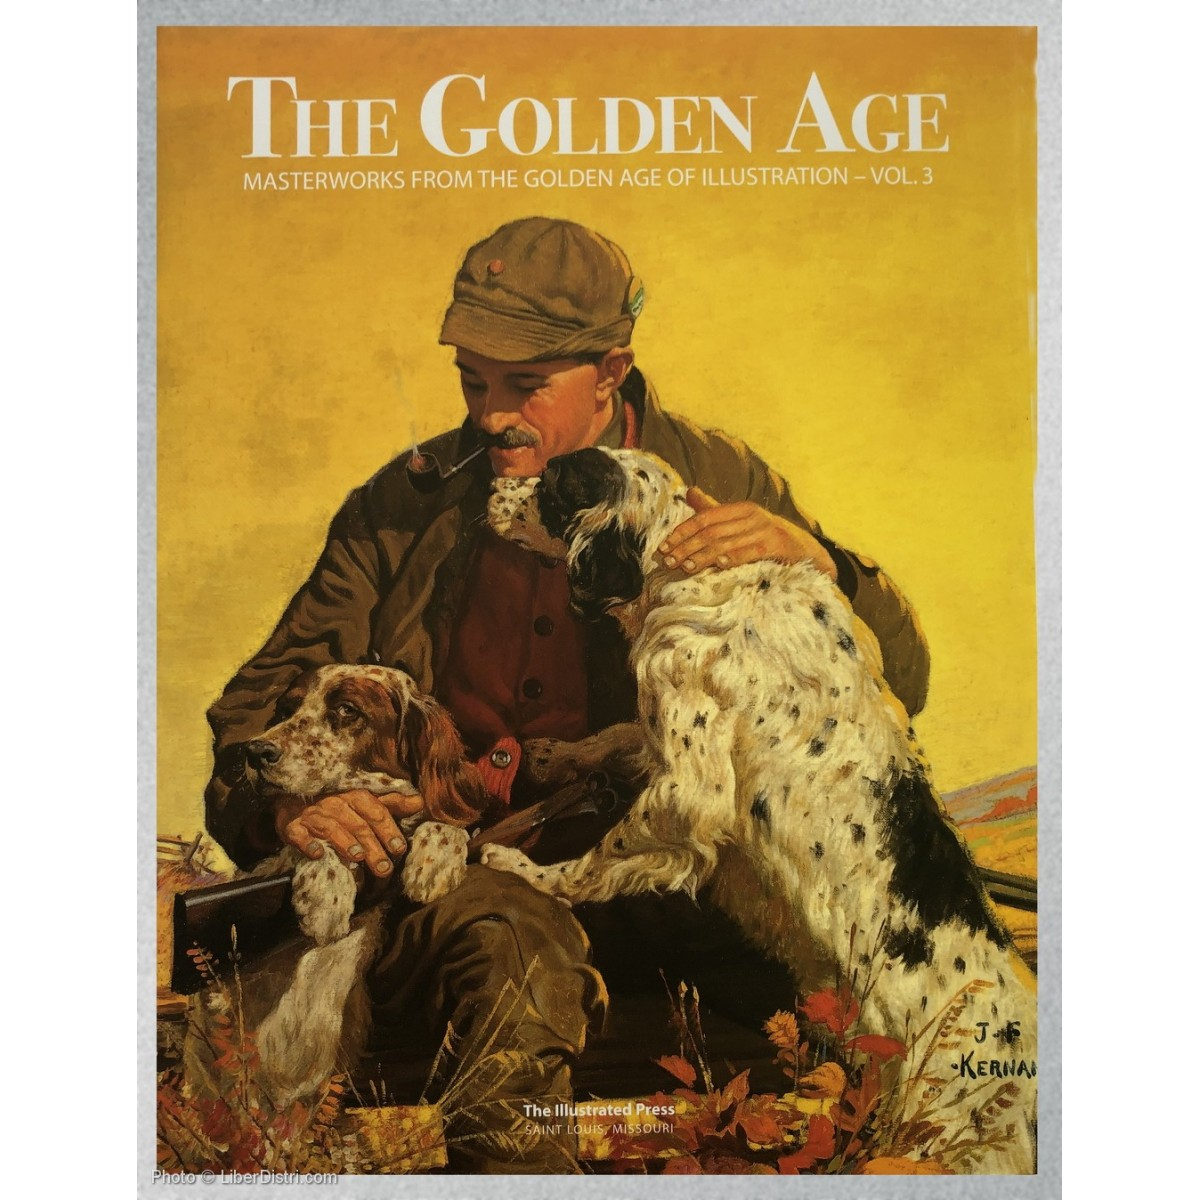 The Golden Age: Masterworks from the Golden Age of Illustration, Volume 3